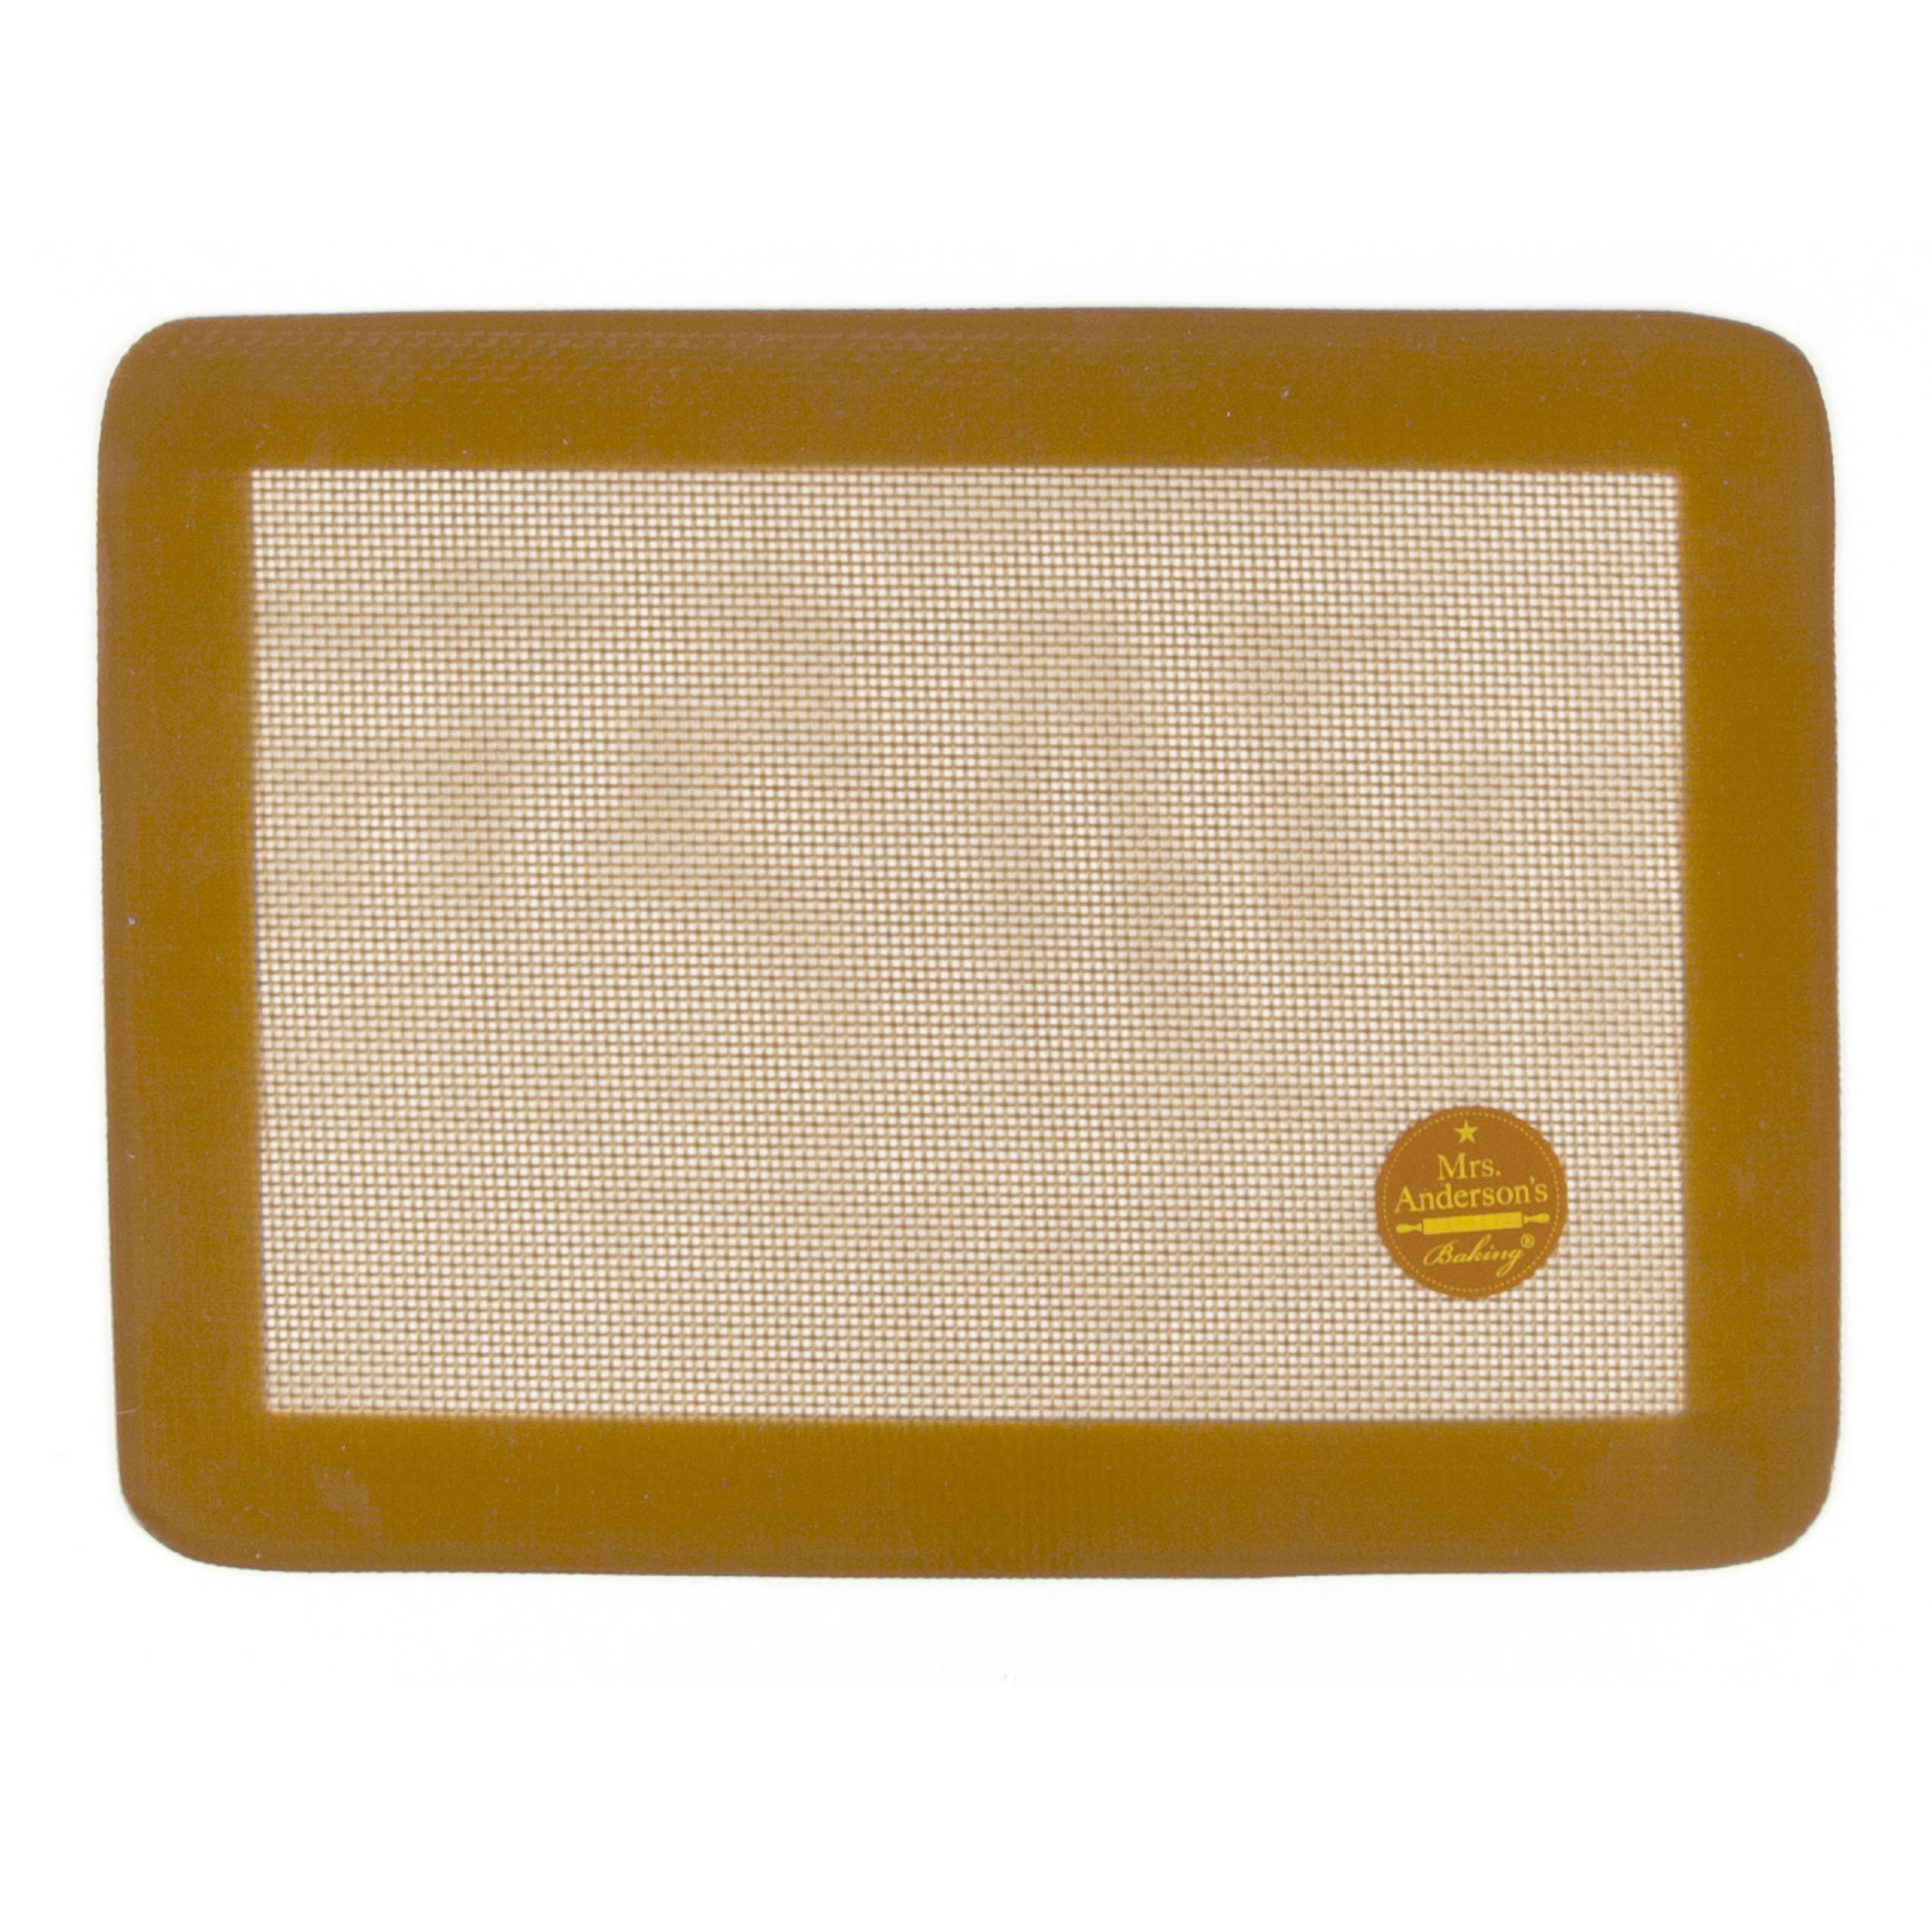 Mrs. Anderson's Silicone Non-Stick Toaster Oven Mat